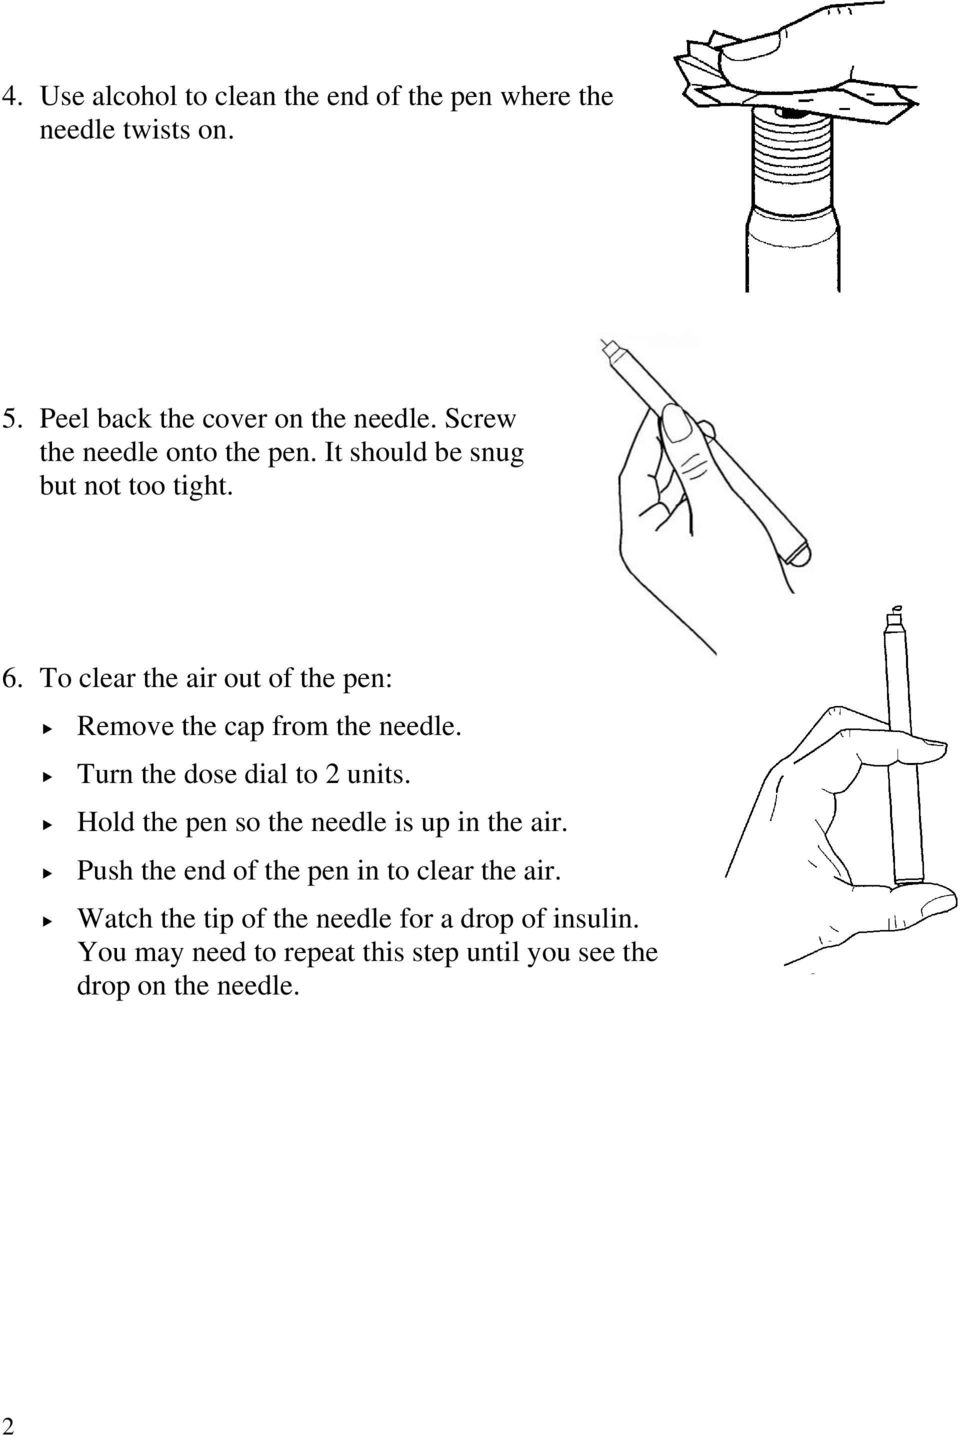 To clear the air out of the pen: Remove the cap from the needle. Turn the dose dial to 2 units.